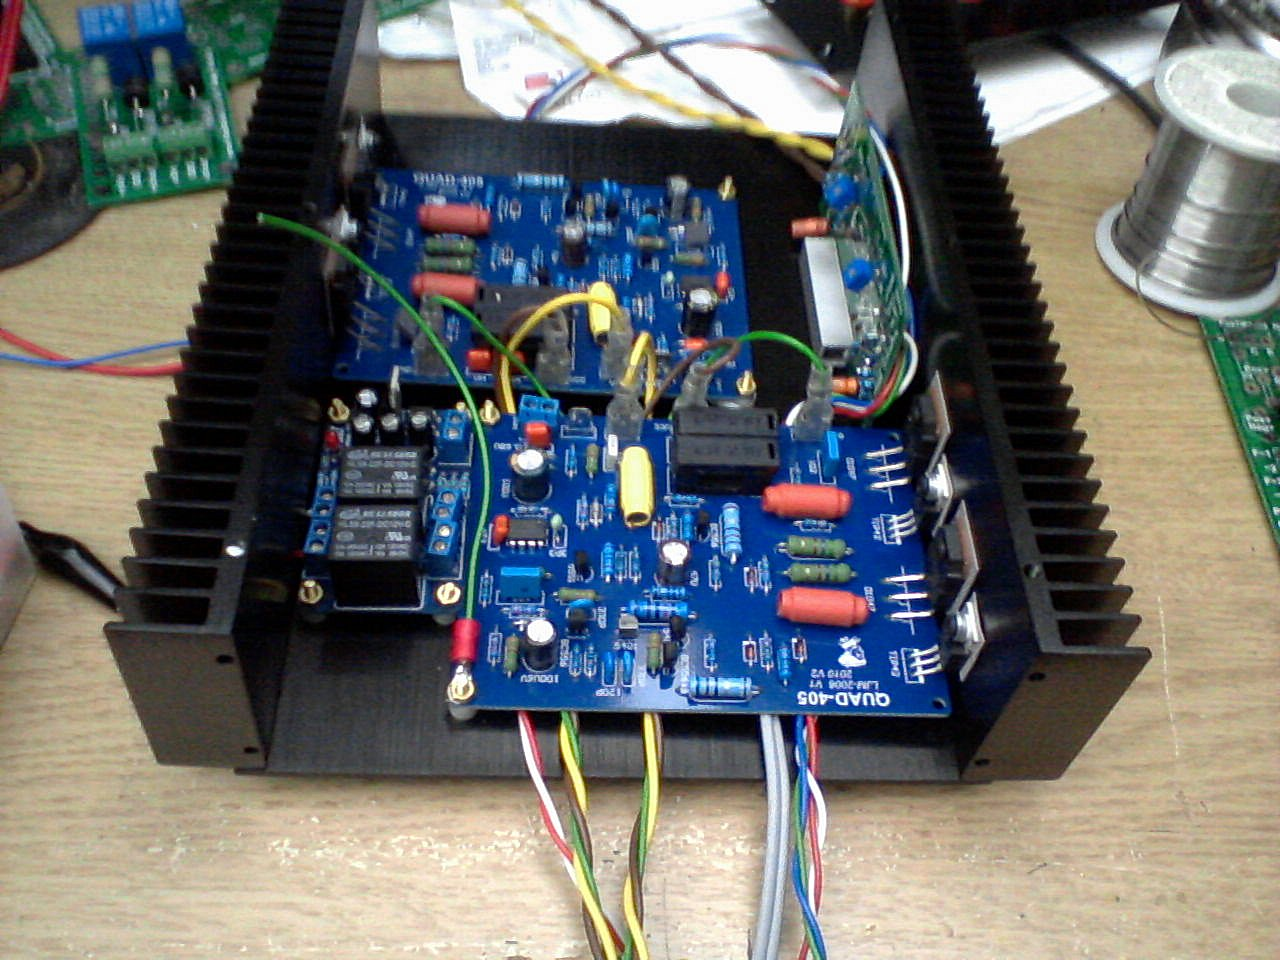 Latest Versions improved PSU components and Wiring harness